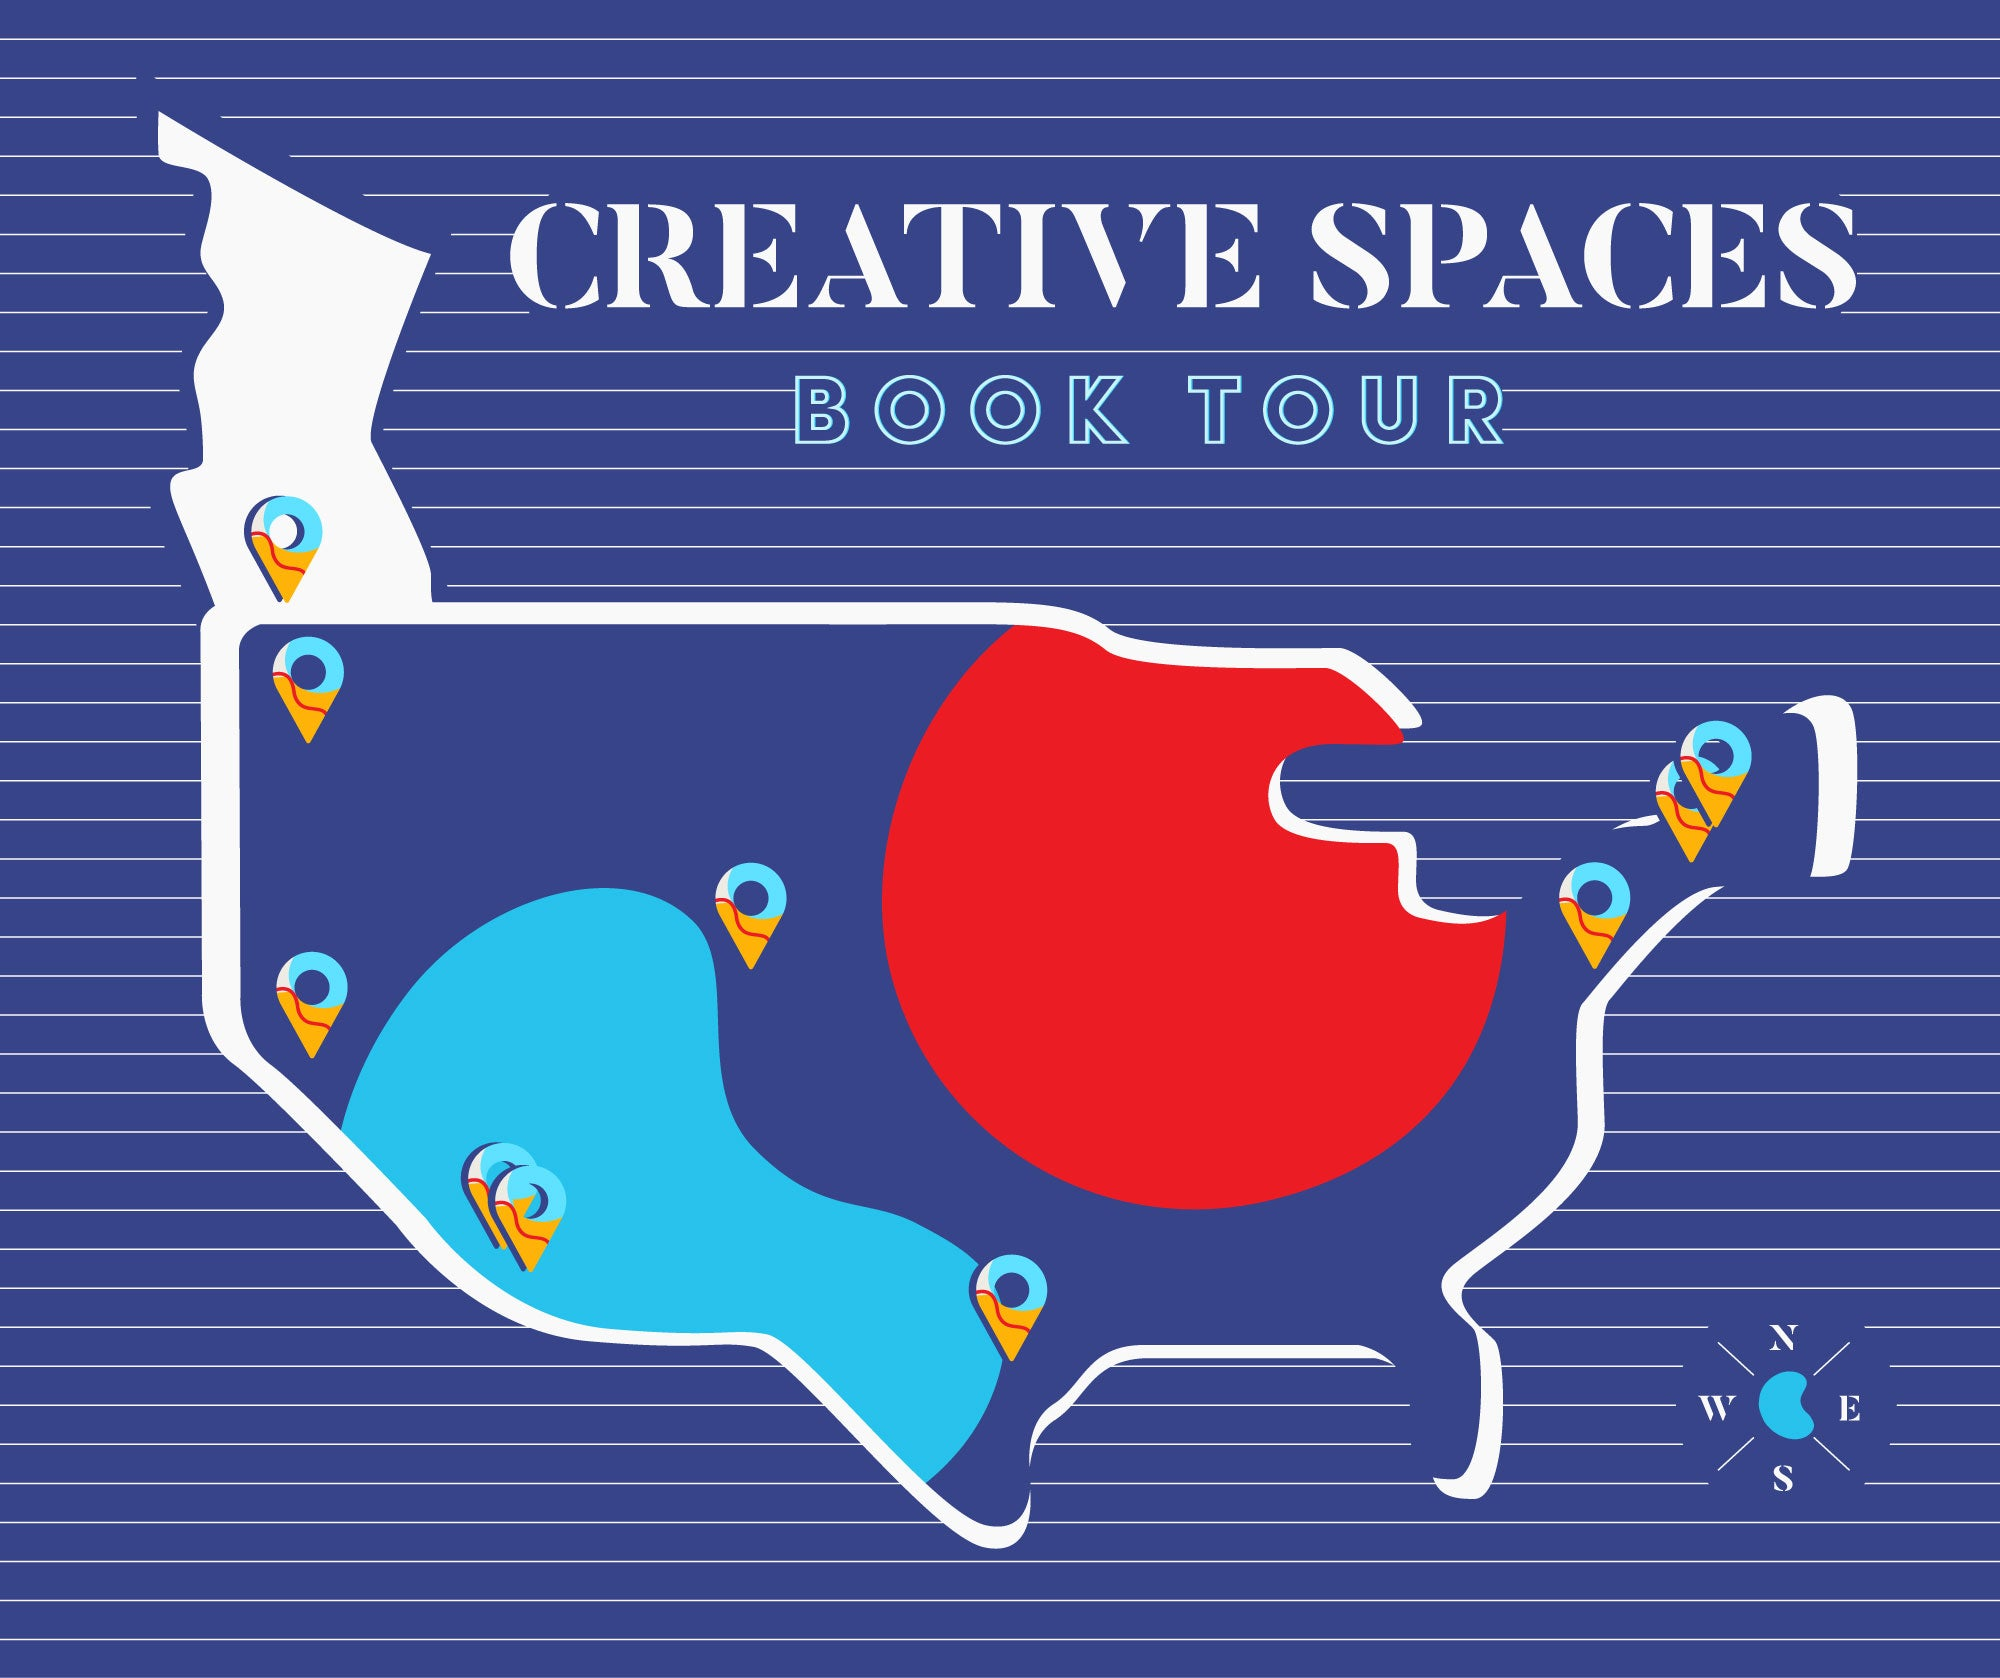 US Map for Creativity Space Book Tour